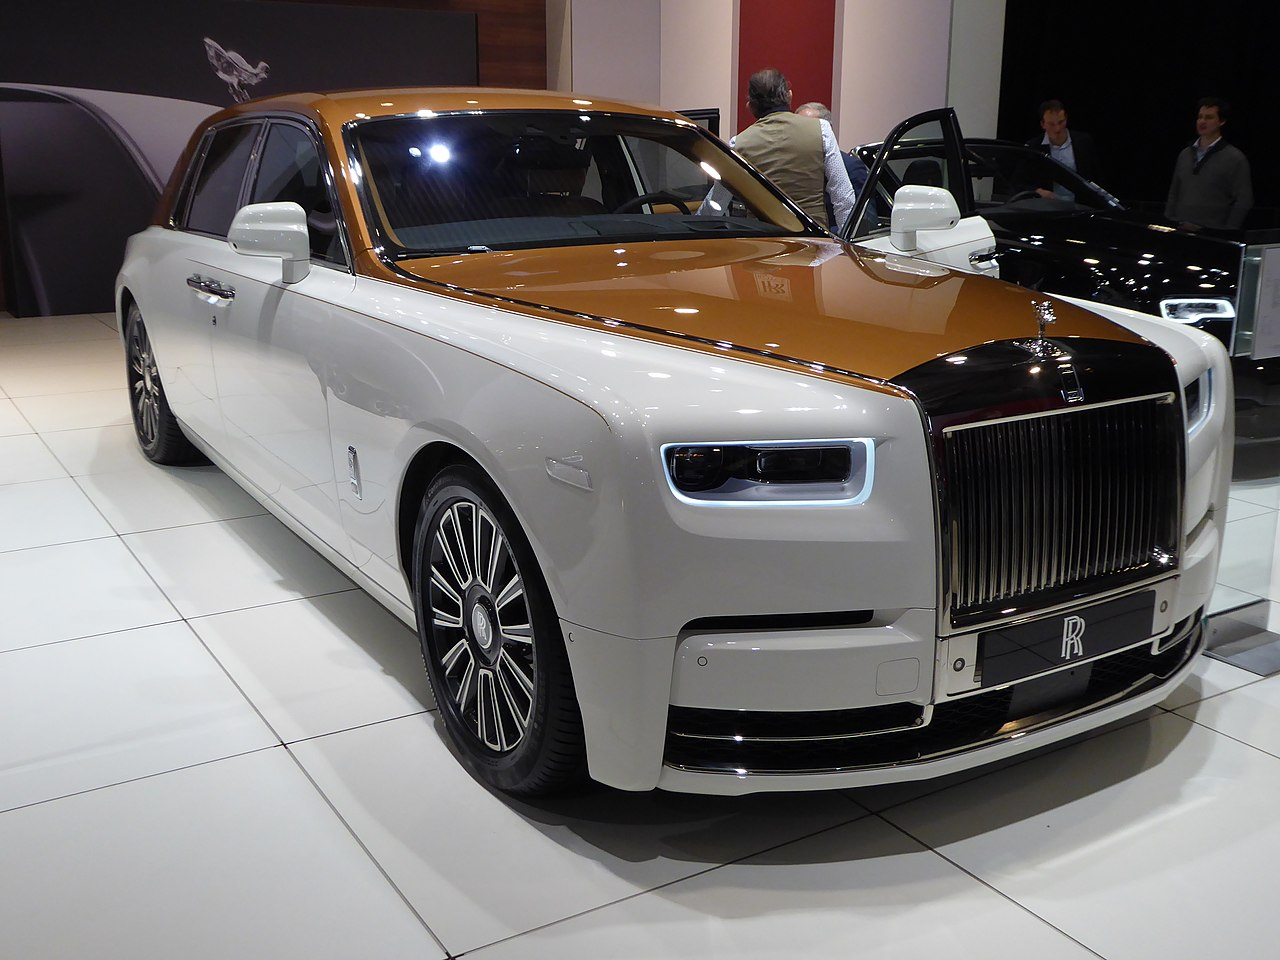 RR Phantom VIII at European Motor Show Brussels 2018 003.jpg